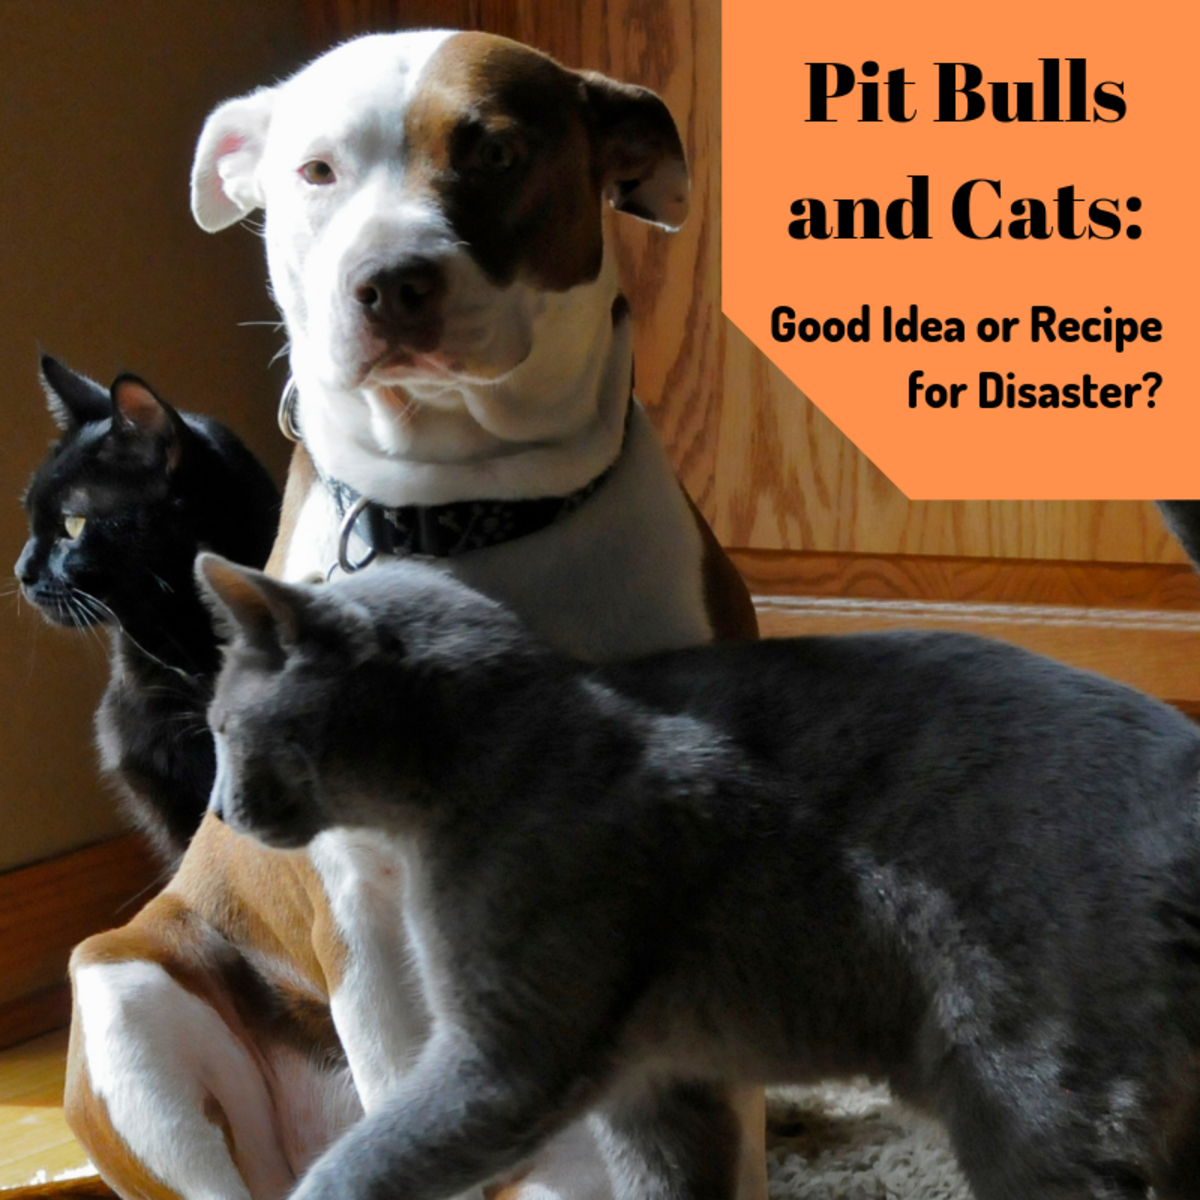 Are Pit Bulls Good With Cats?